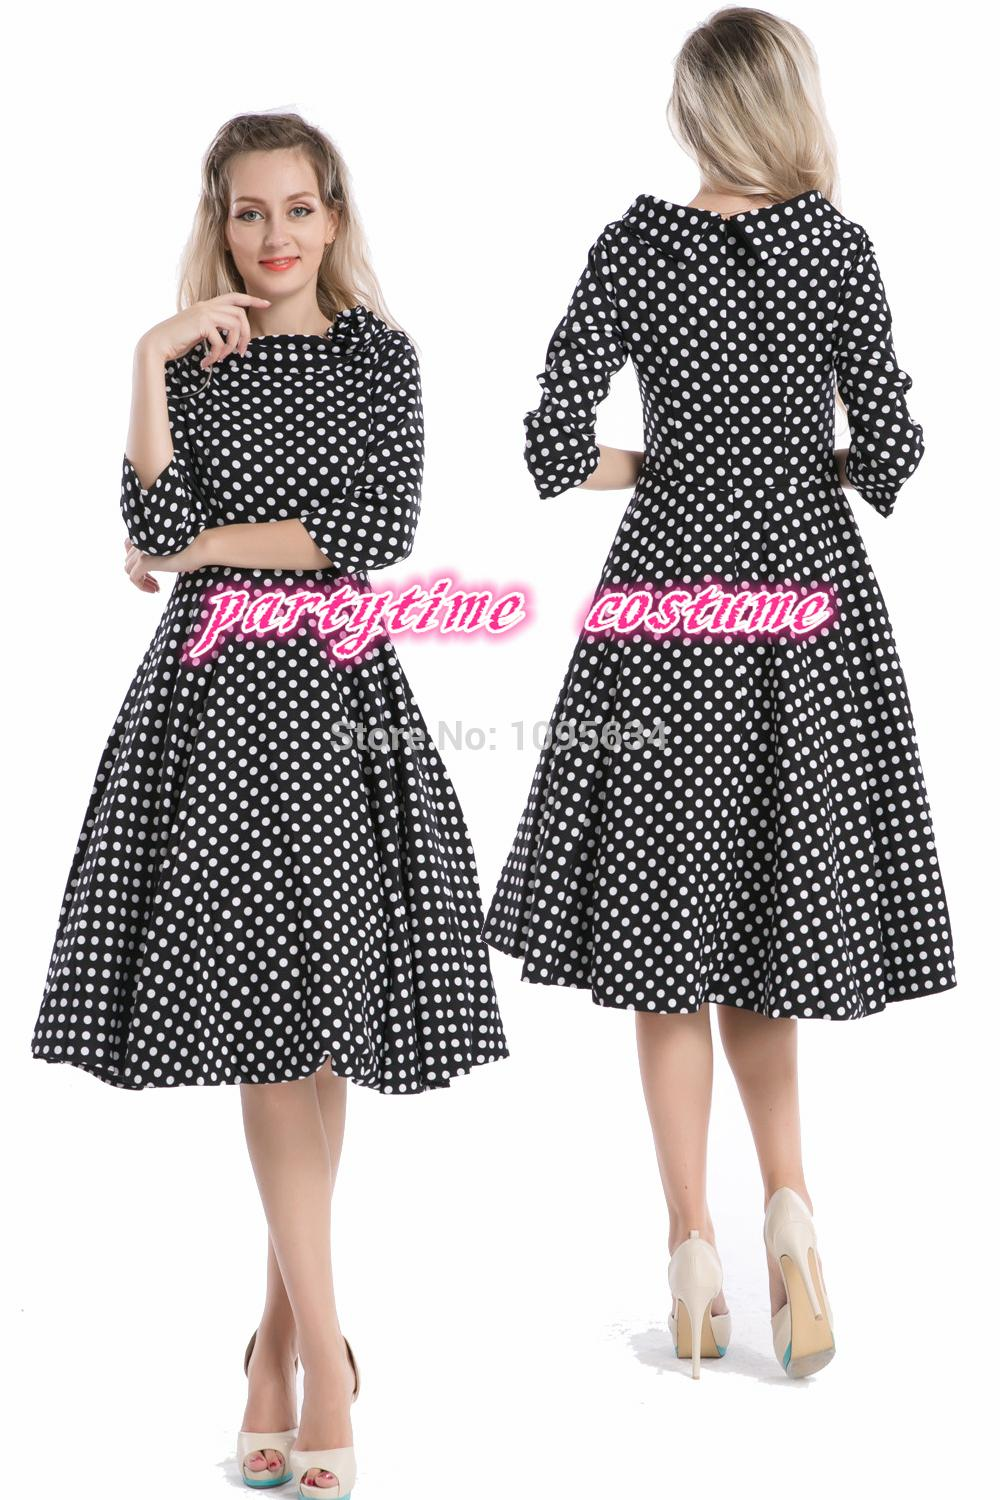 ed2c891cfa Get Quotations · free shipping half sleeve 1950s pin up retro polka dot  rockabilly dress plus size S-